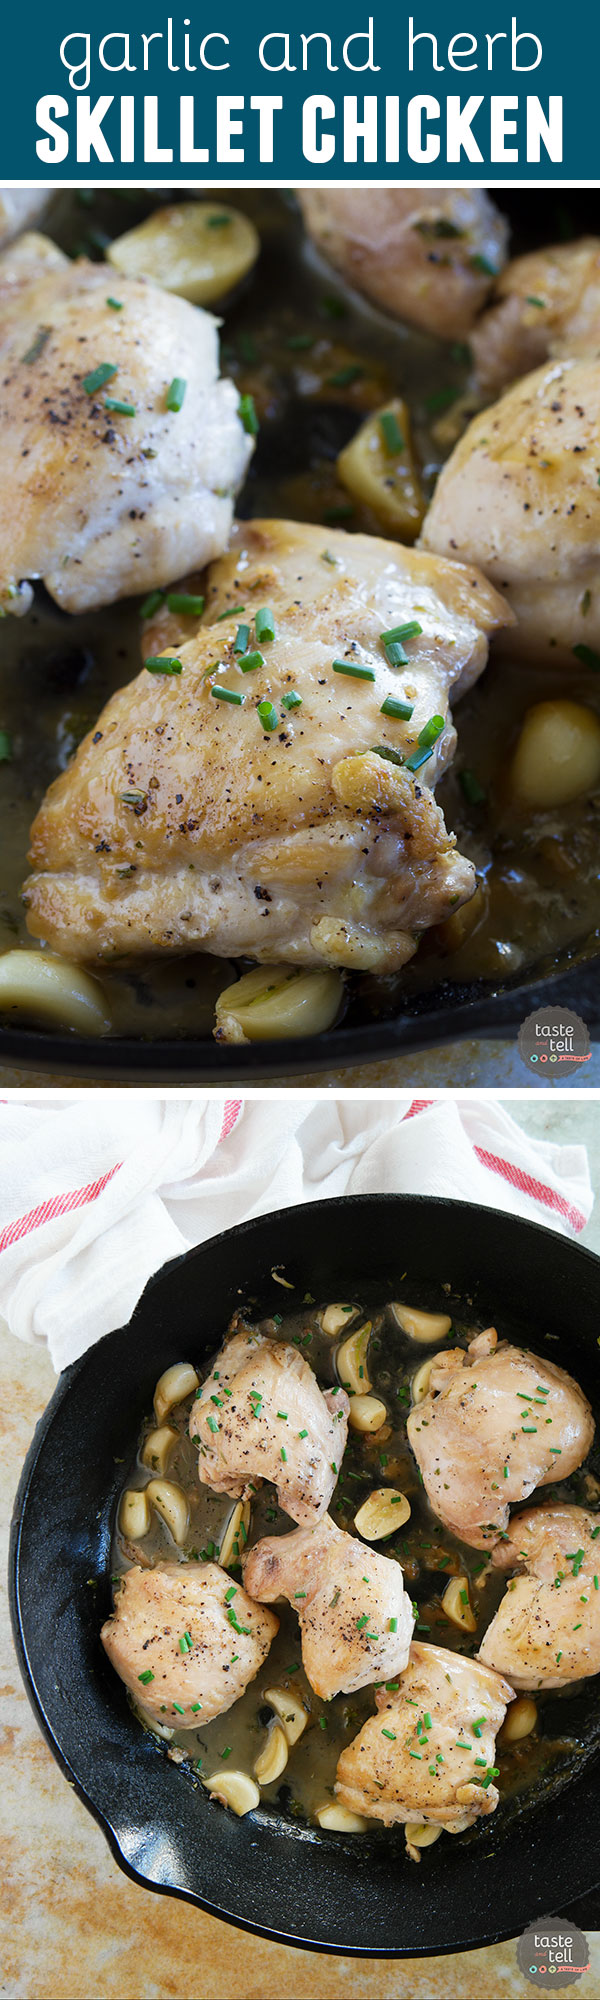 Finished in 30 minutes, this easy Garlic and Herb Skillet Chicken has tons of flavor with very little effort. And the cleanup is easy, too!